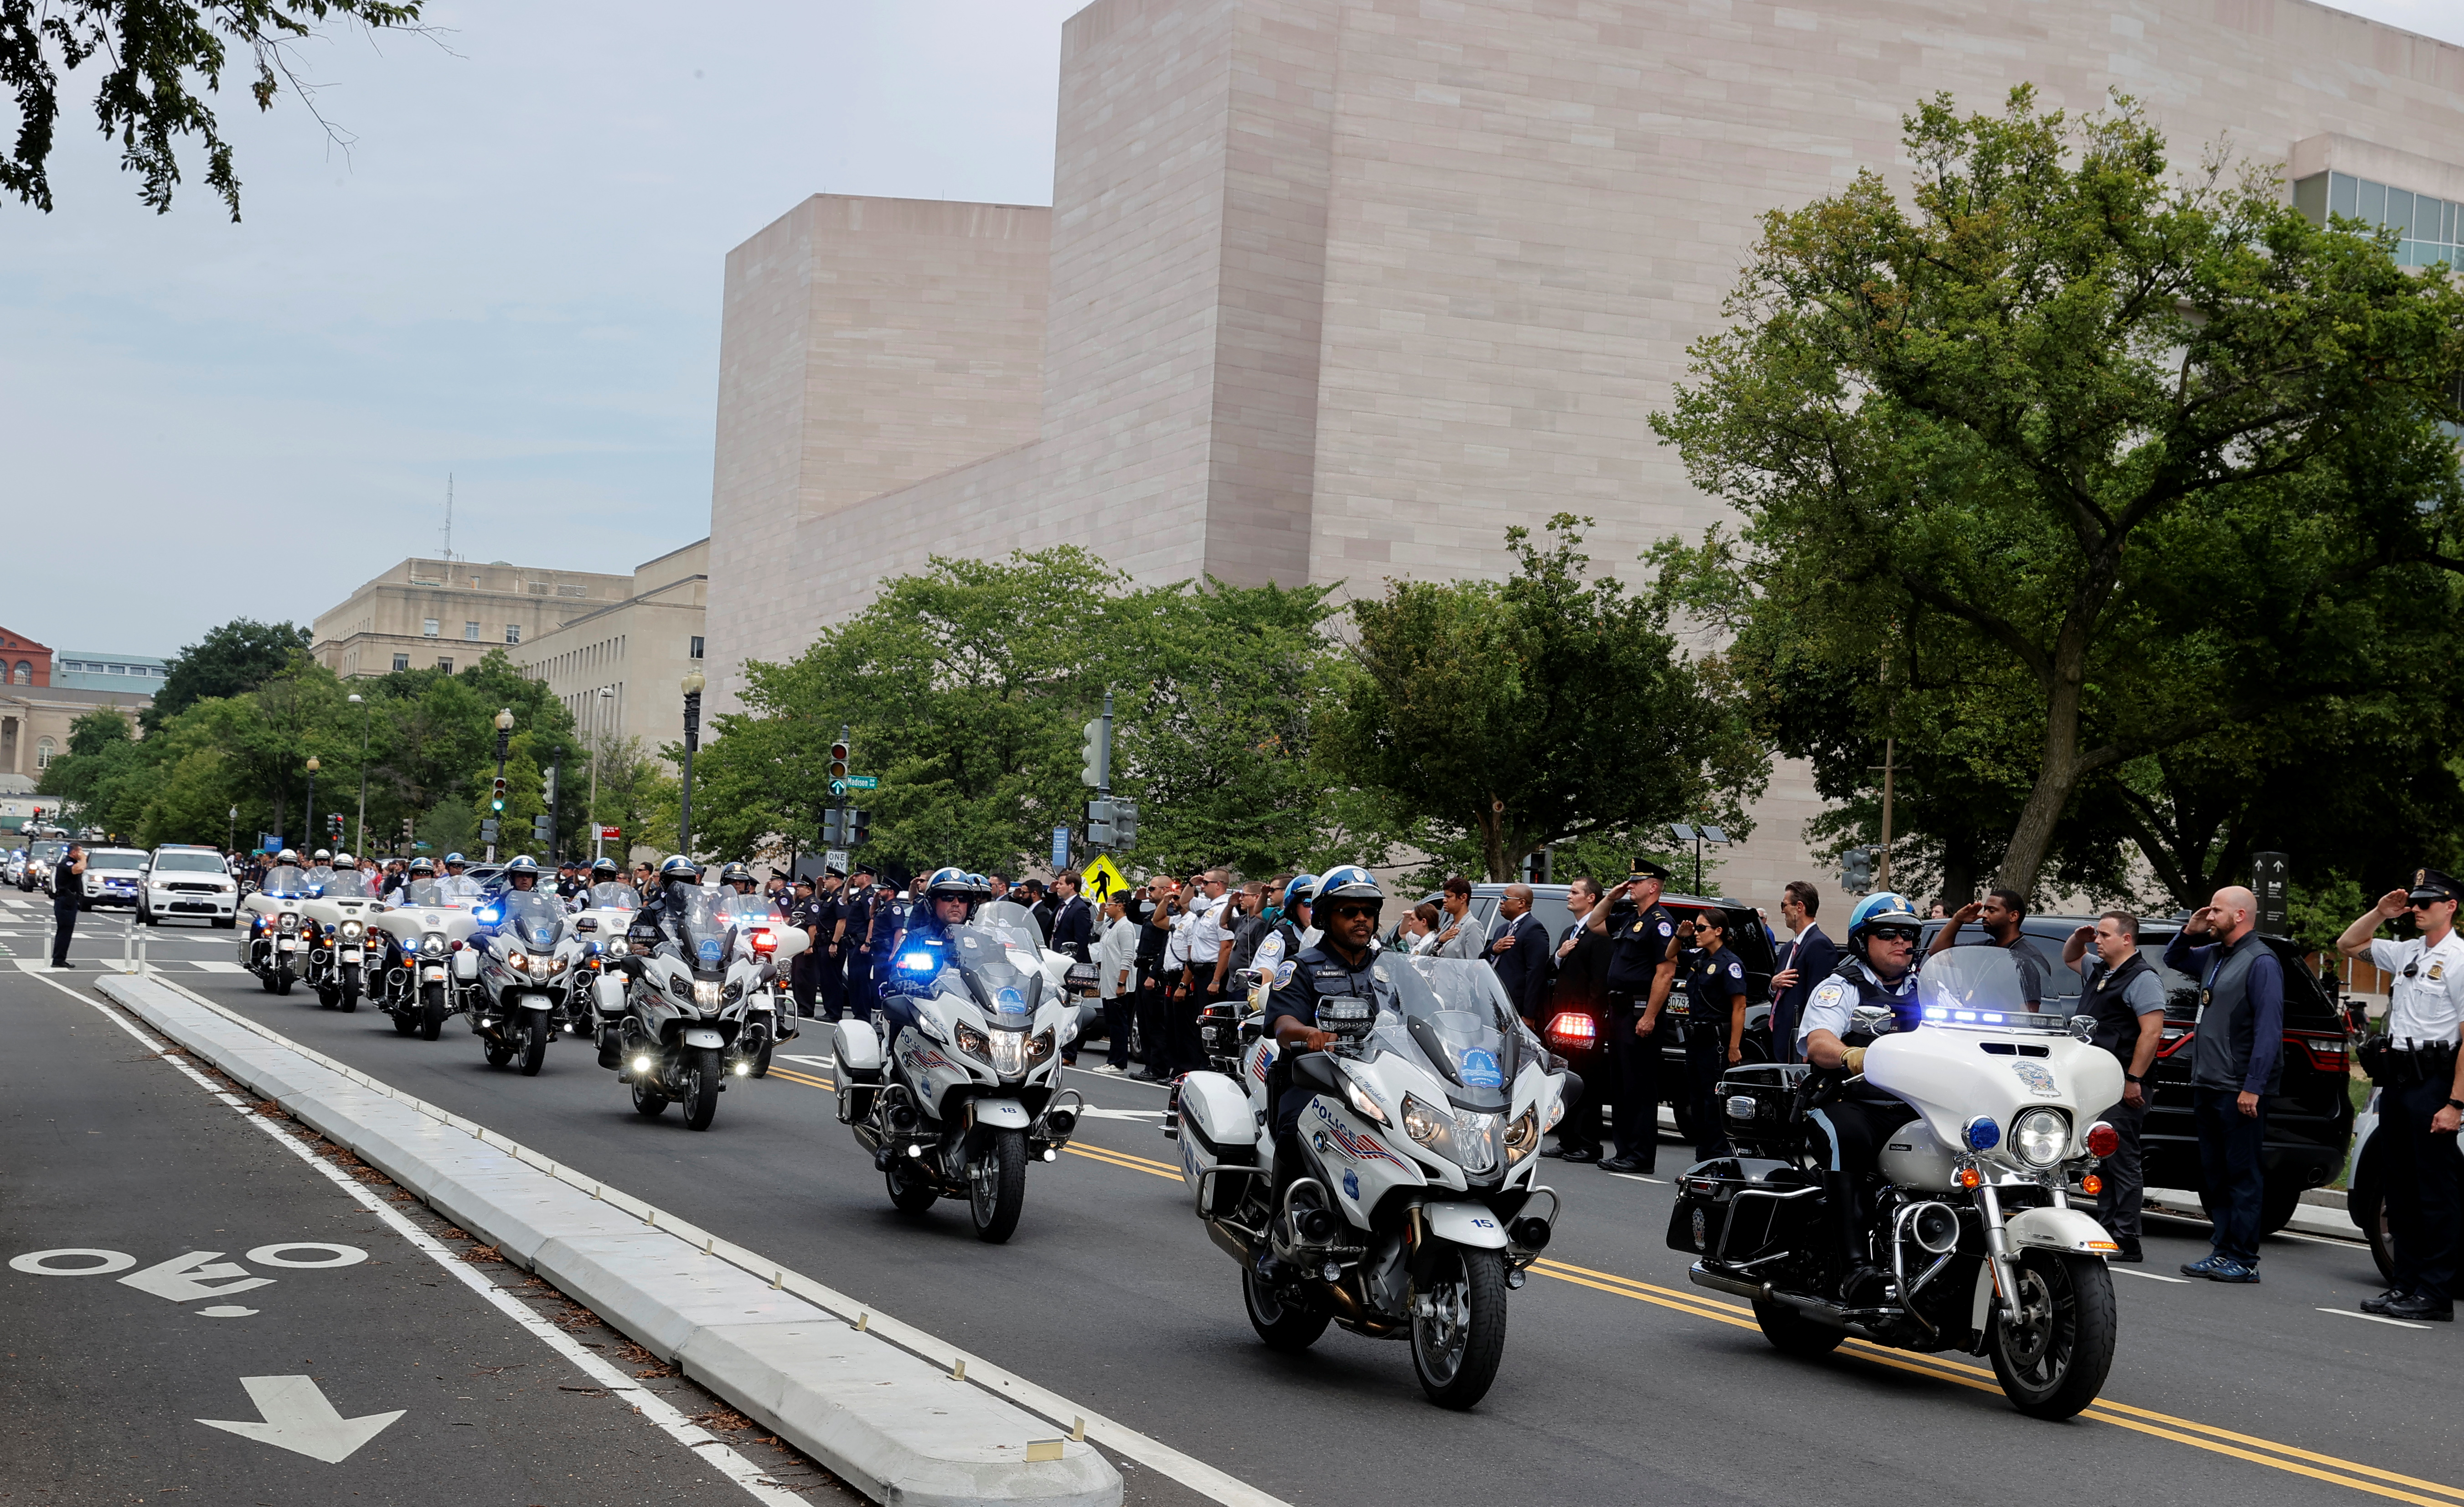 Law enforcement officers from Washington's Metropolitan Police Department, the U.S. Capitol Police, the Pentagon Force Protection Agency and other police departments ride in a ceremonial procession past the East Wing of the National Gallery of Art as other officers salute a police officer wounded in a shooting outside the Pentagon earlier in the day in Washington, August 3, 2021.  REUTERS/Jim Bourg